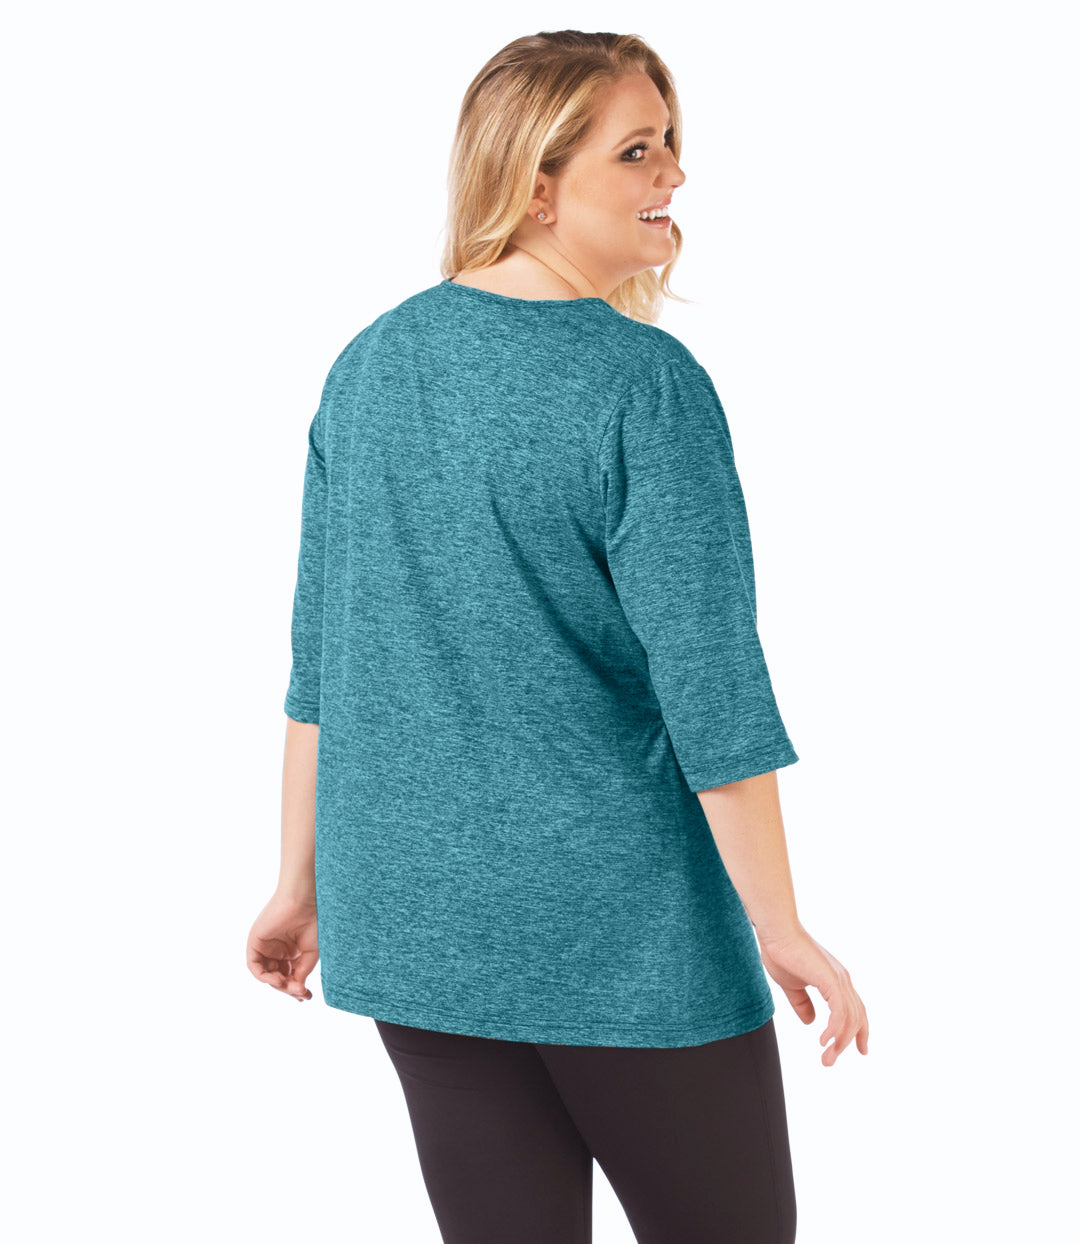 SoftWik® V-Neck Tunic in Ocean Blue-Plus Size Activewear & Athletic Clothing-Osheka, Inc-XL-Ocean Blue-JunoActive